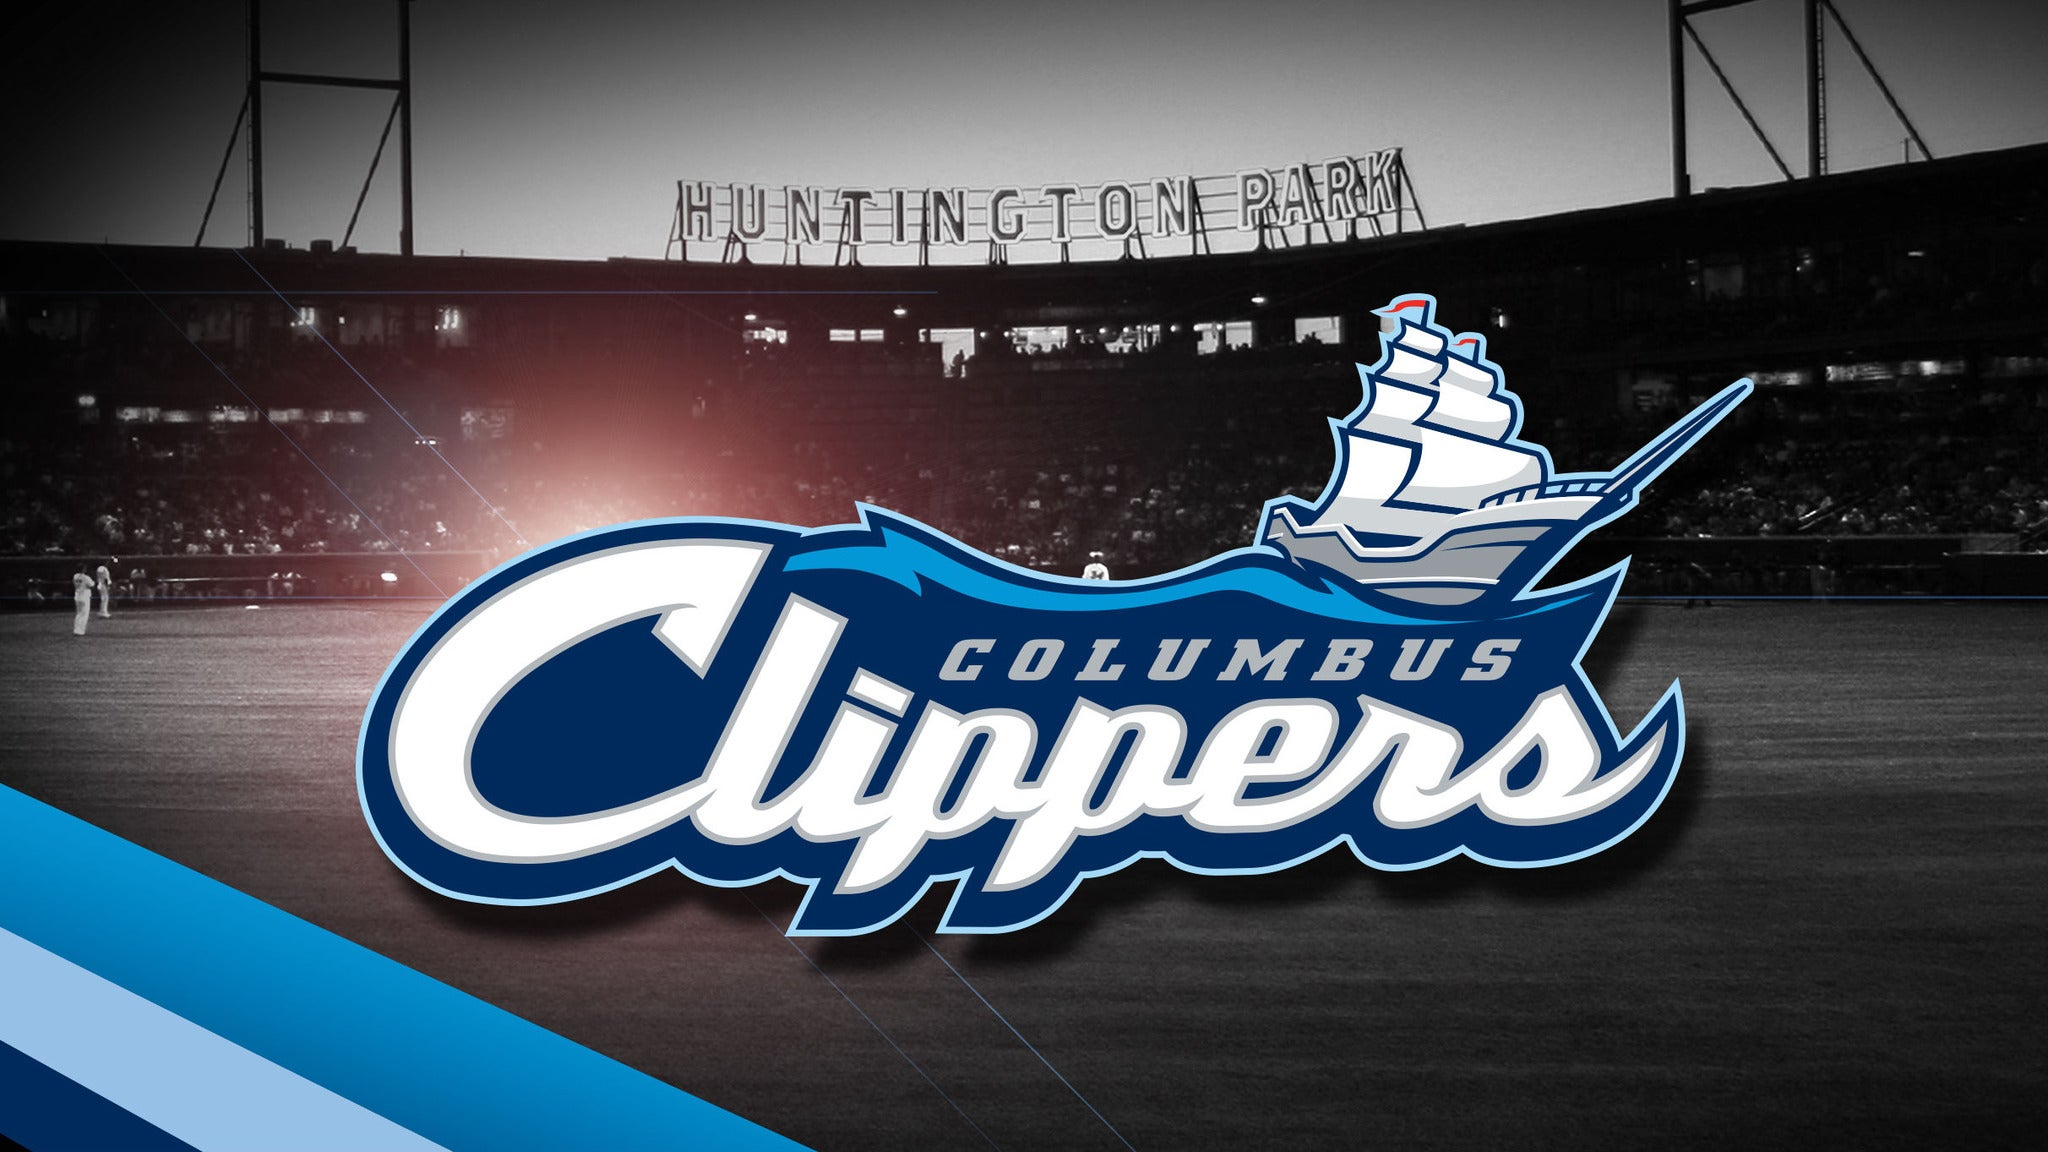 Columbus Clippers vs. Pawtucket Red Sox at Huntington Park